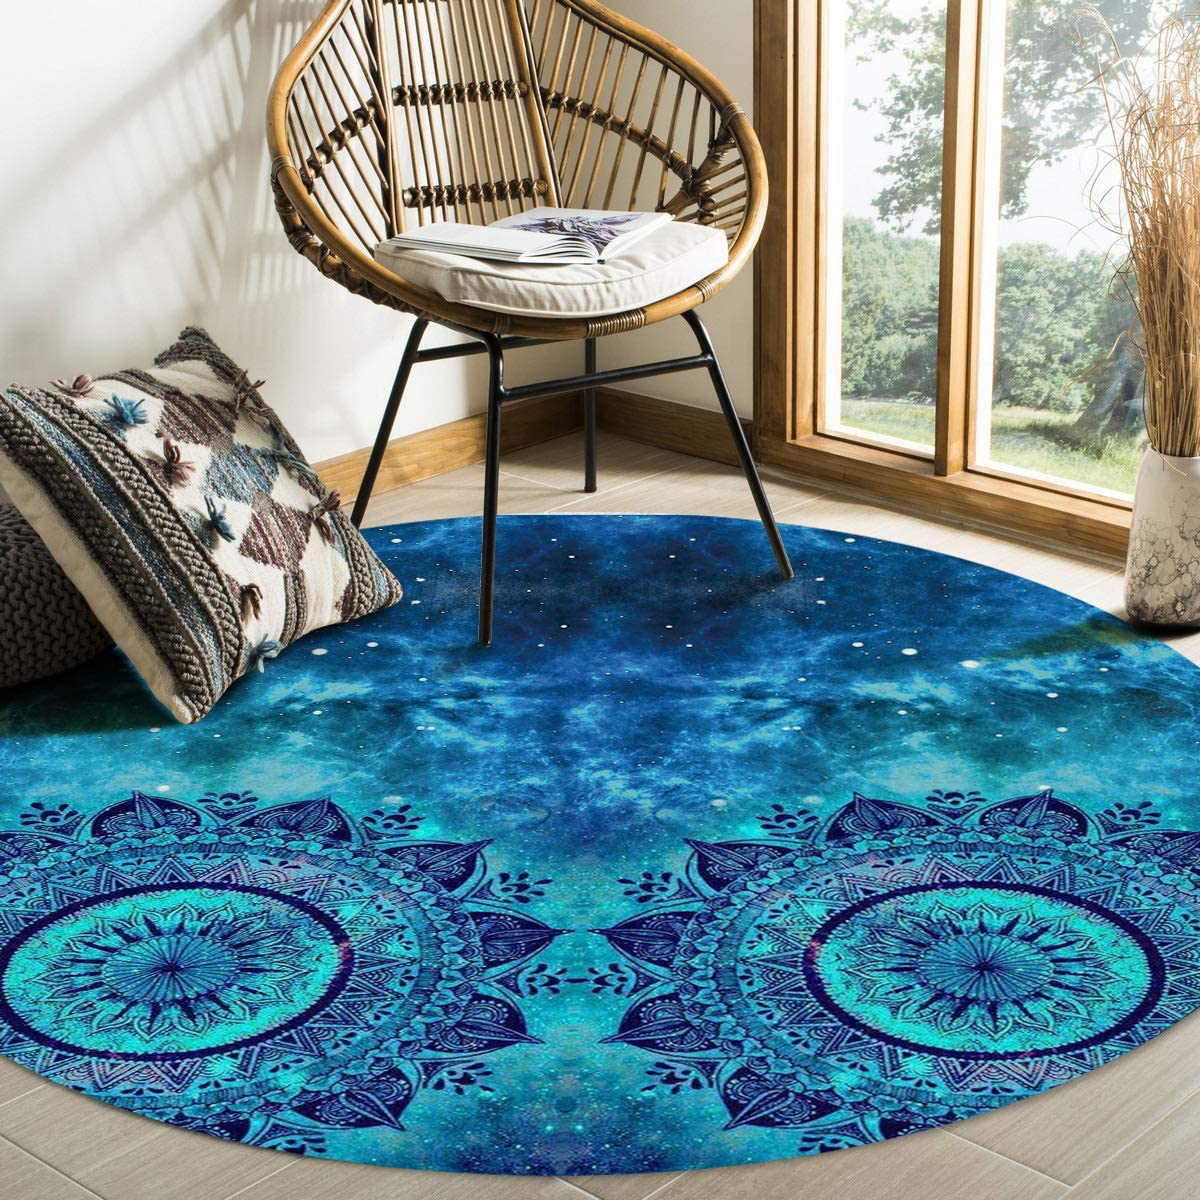 Plush Round Throw Rug Cozy Rug Floor Mat, Watercolor Starry Art Mandala Area Rugs Home Office Decorator, Super Soft Stain-Proof Carpets Kids Play Rug, 3 Feet